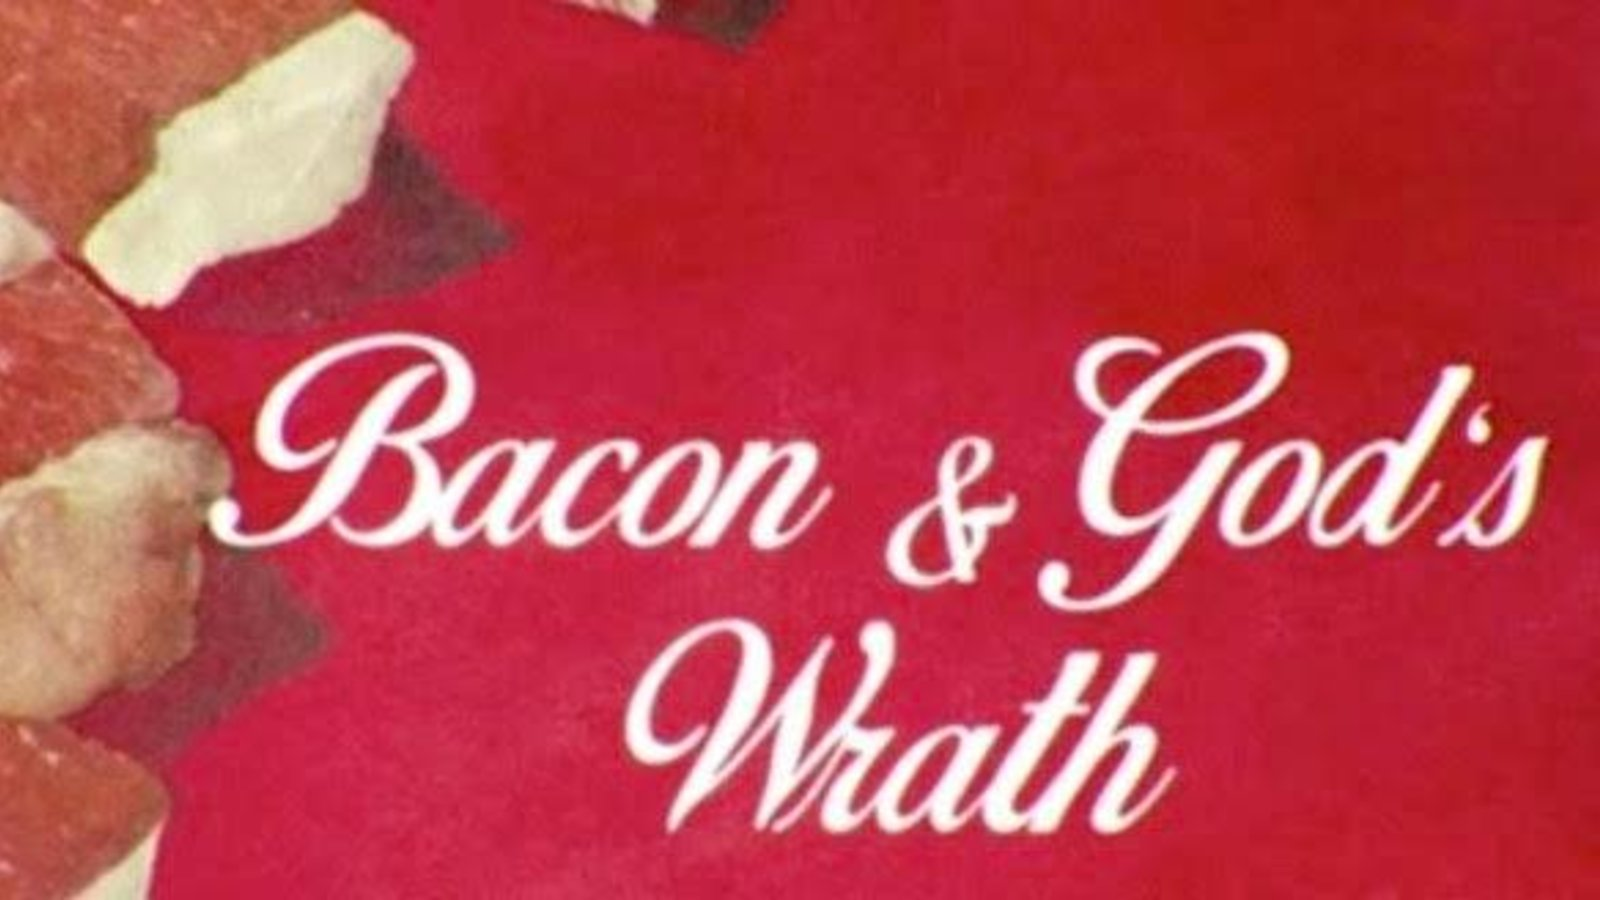 Bacon & God's Wrath - A Jewish Woman Tastes Bacon for the First Time